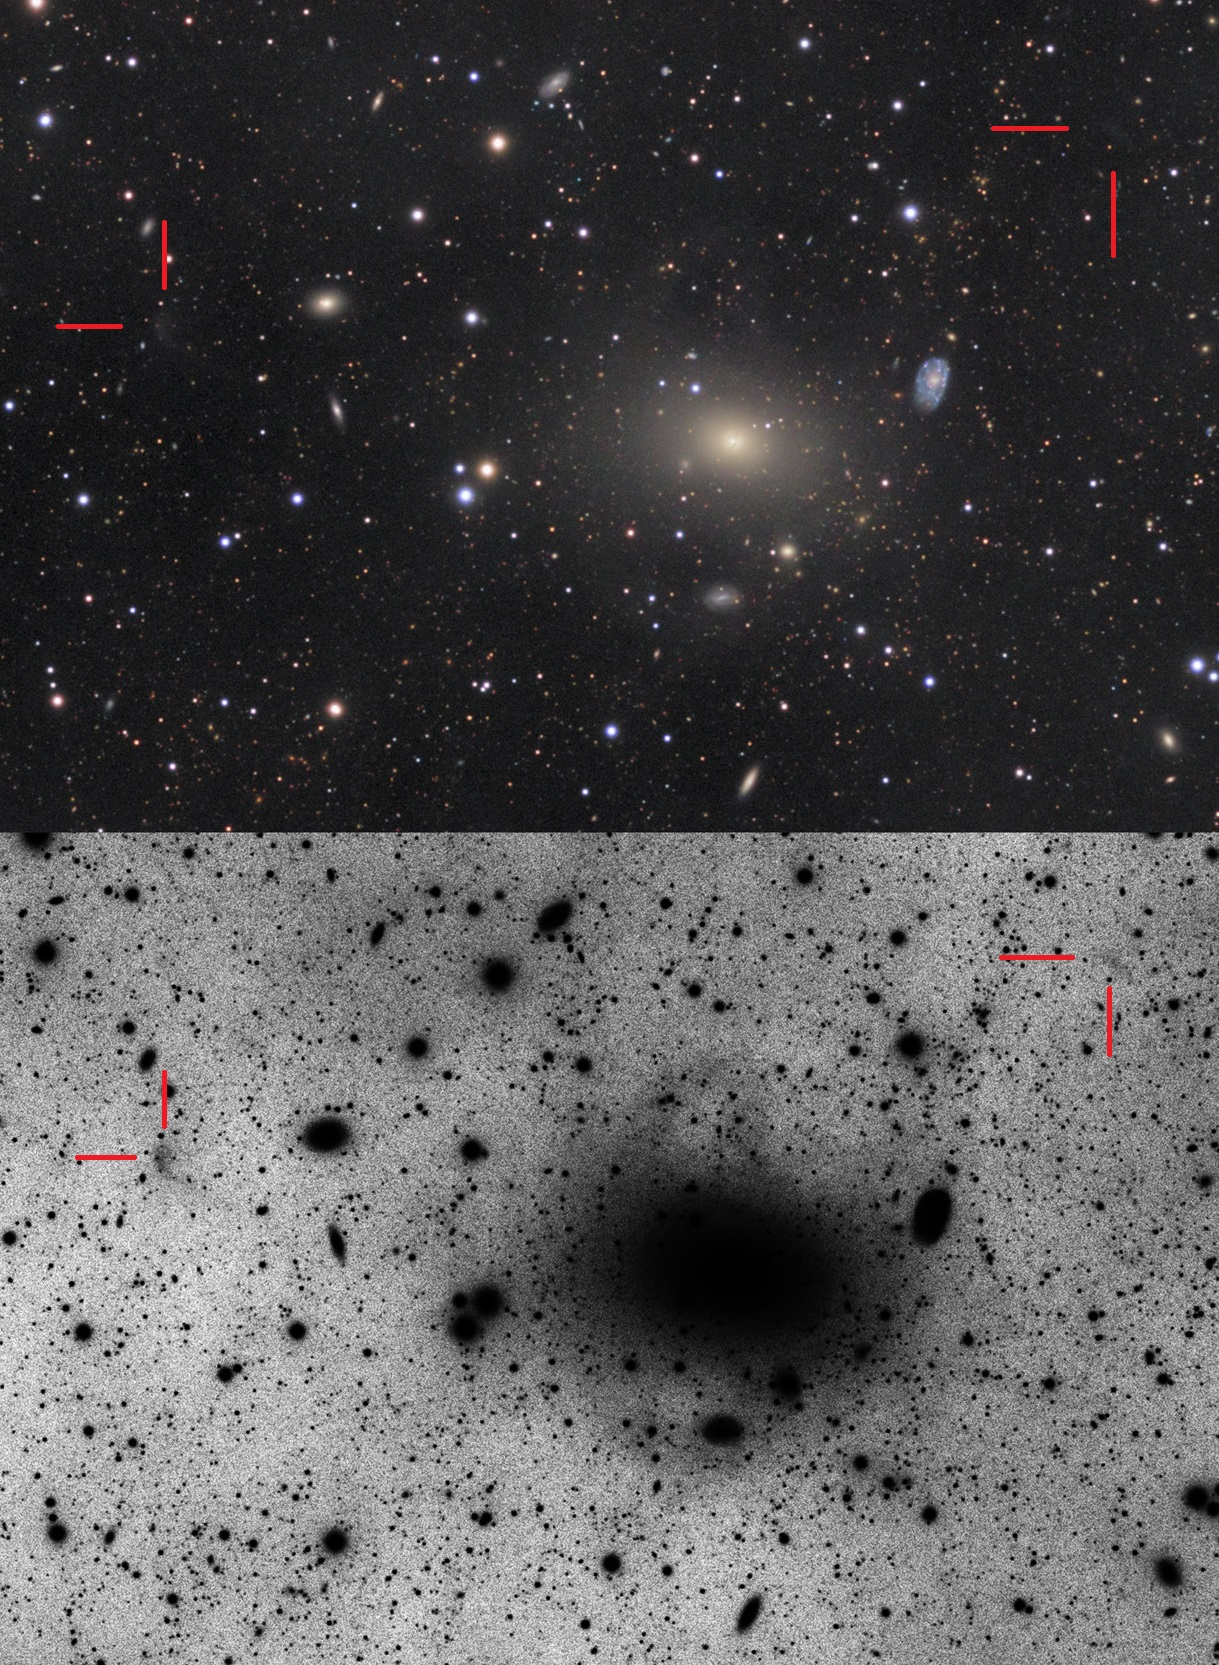 NGC5485_FNeyer_Anm_Zilch